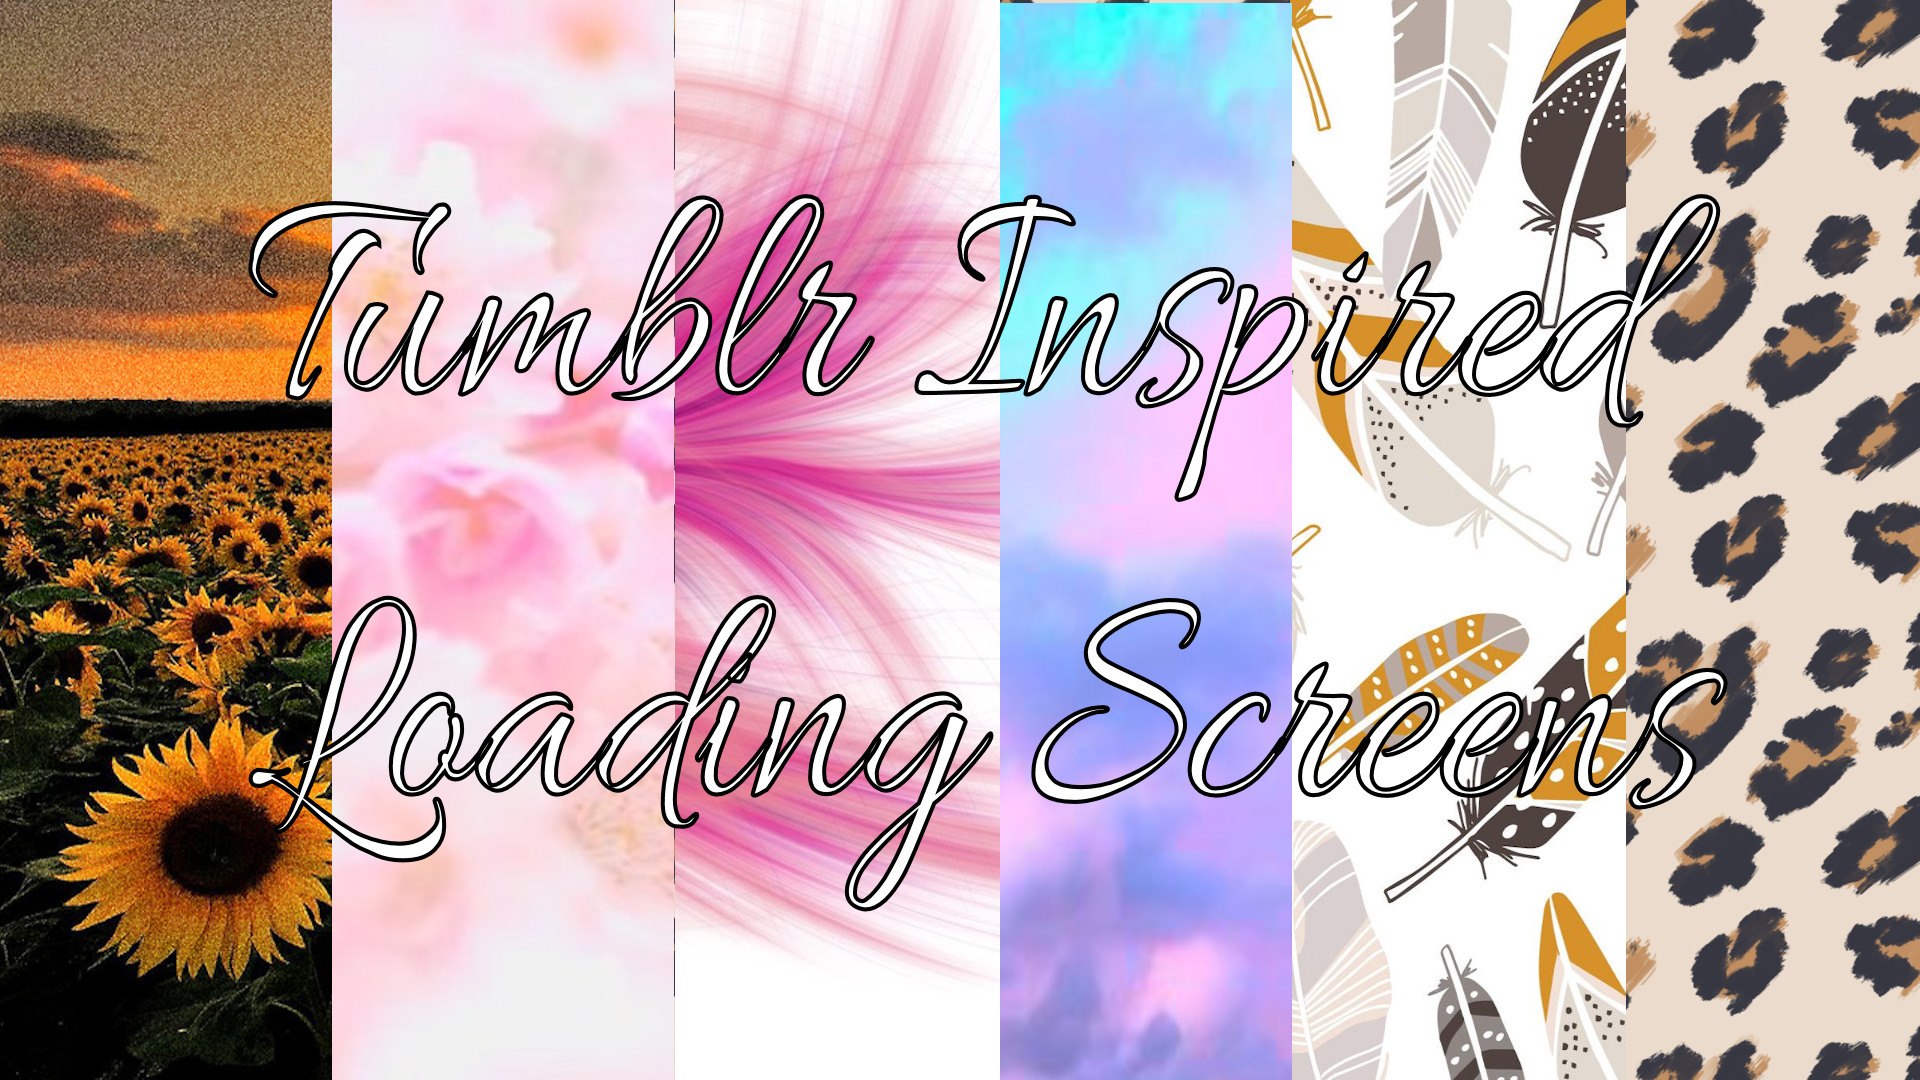 ModTheSims – Tumblr Inspired Loading Screens